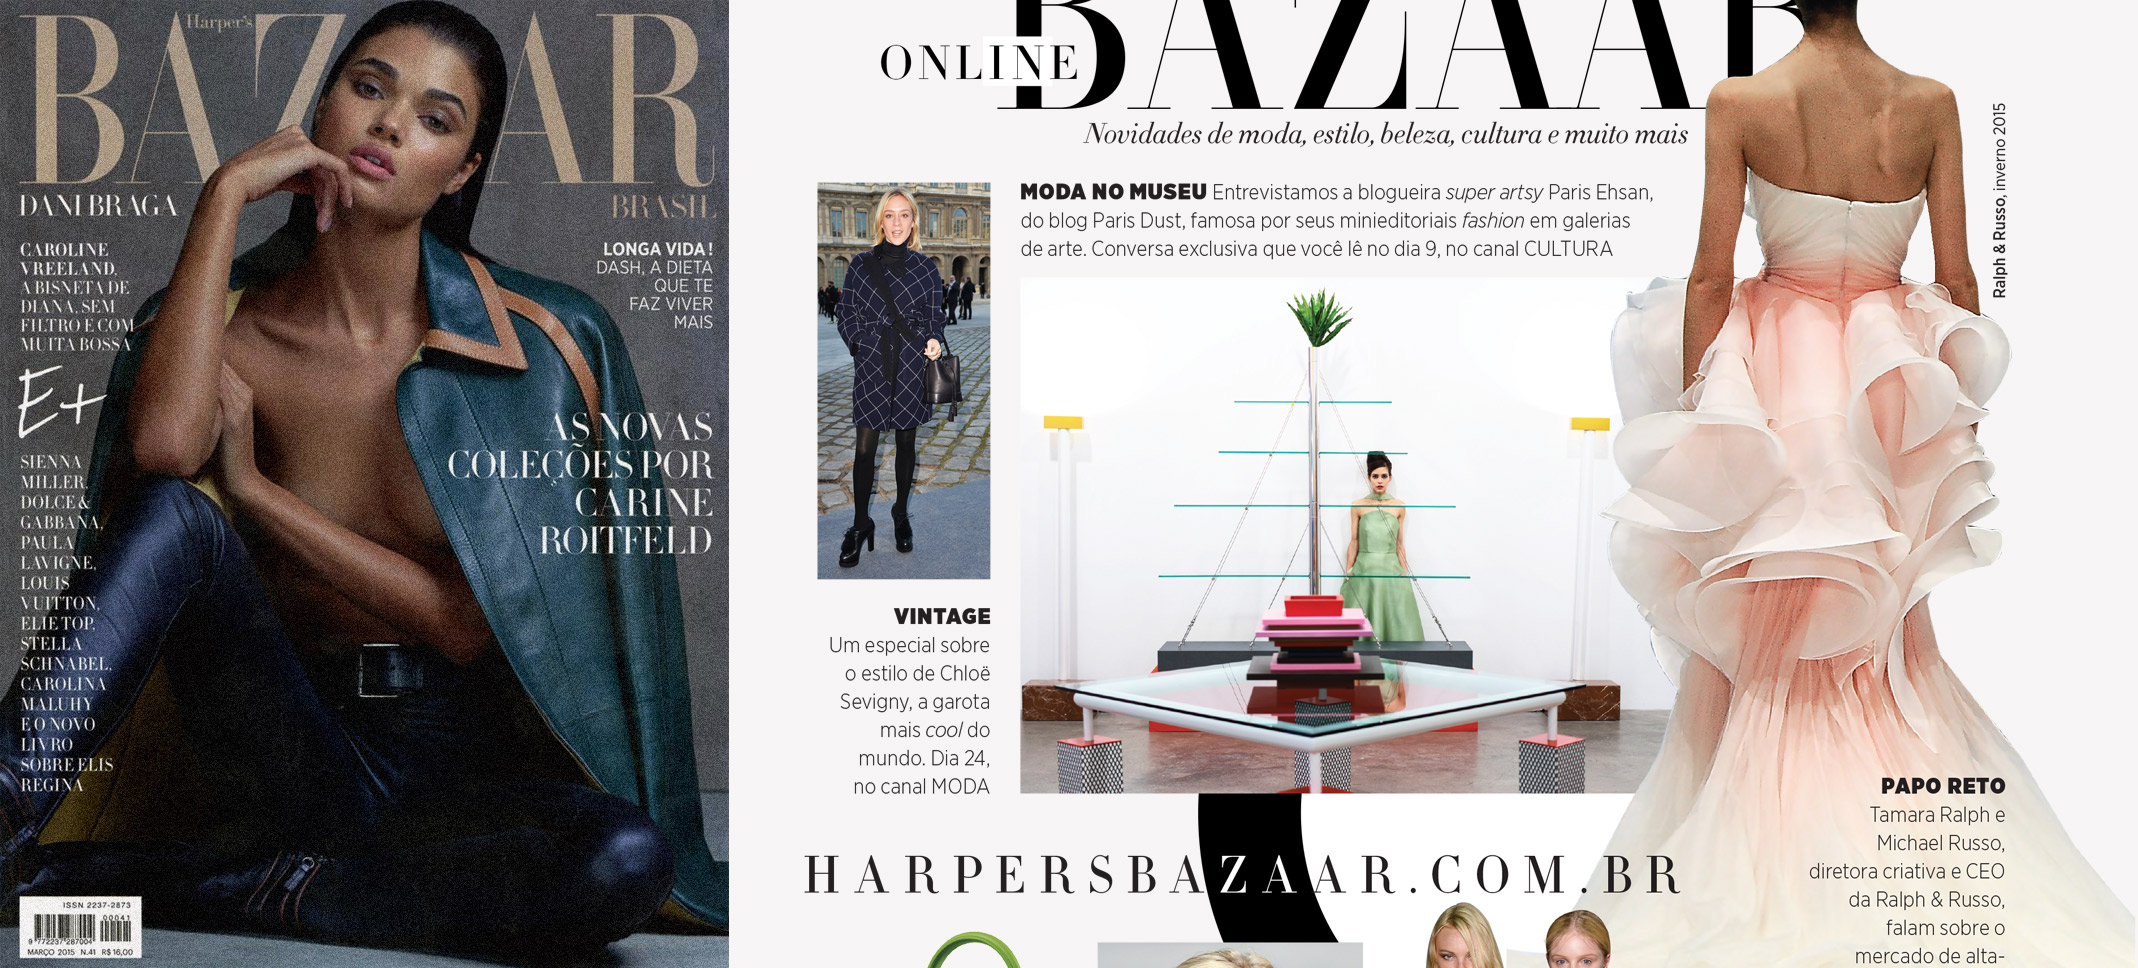 pd-press-2015-5-harpers-bazaar-br